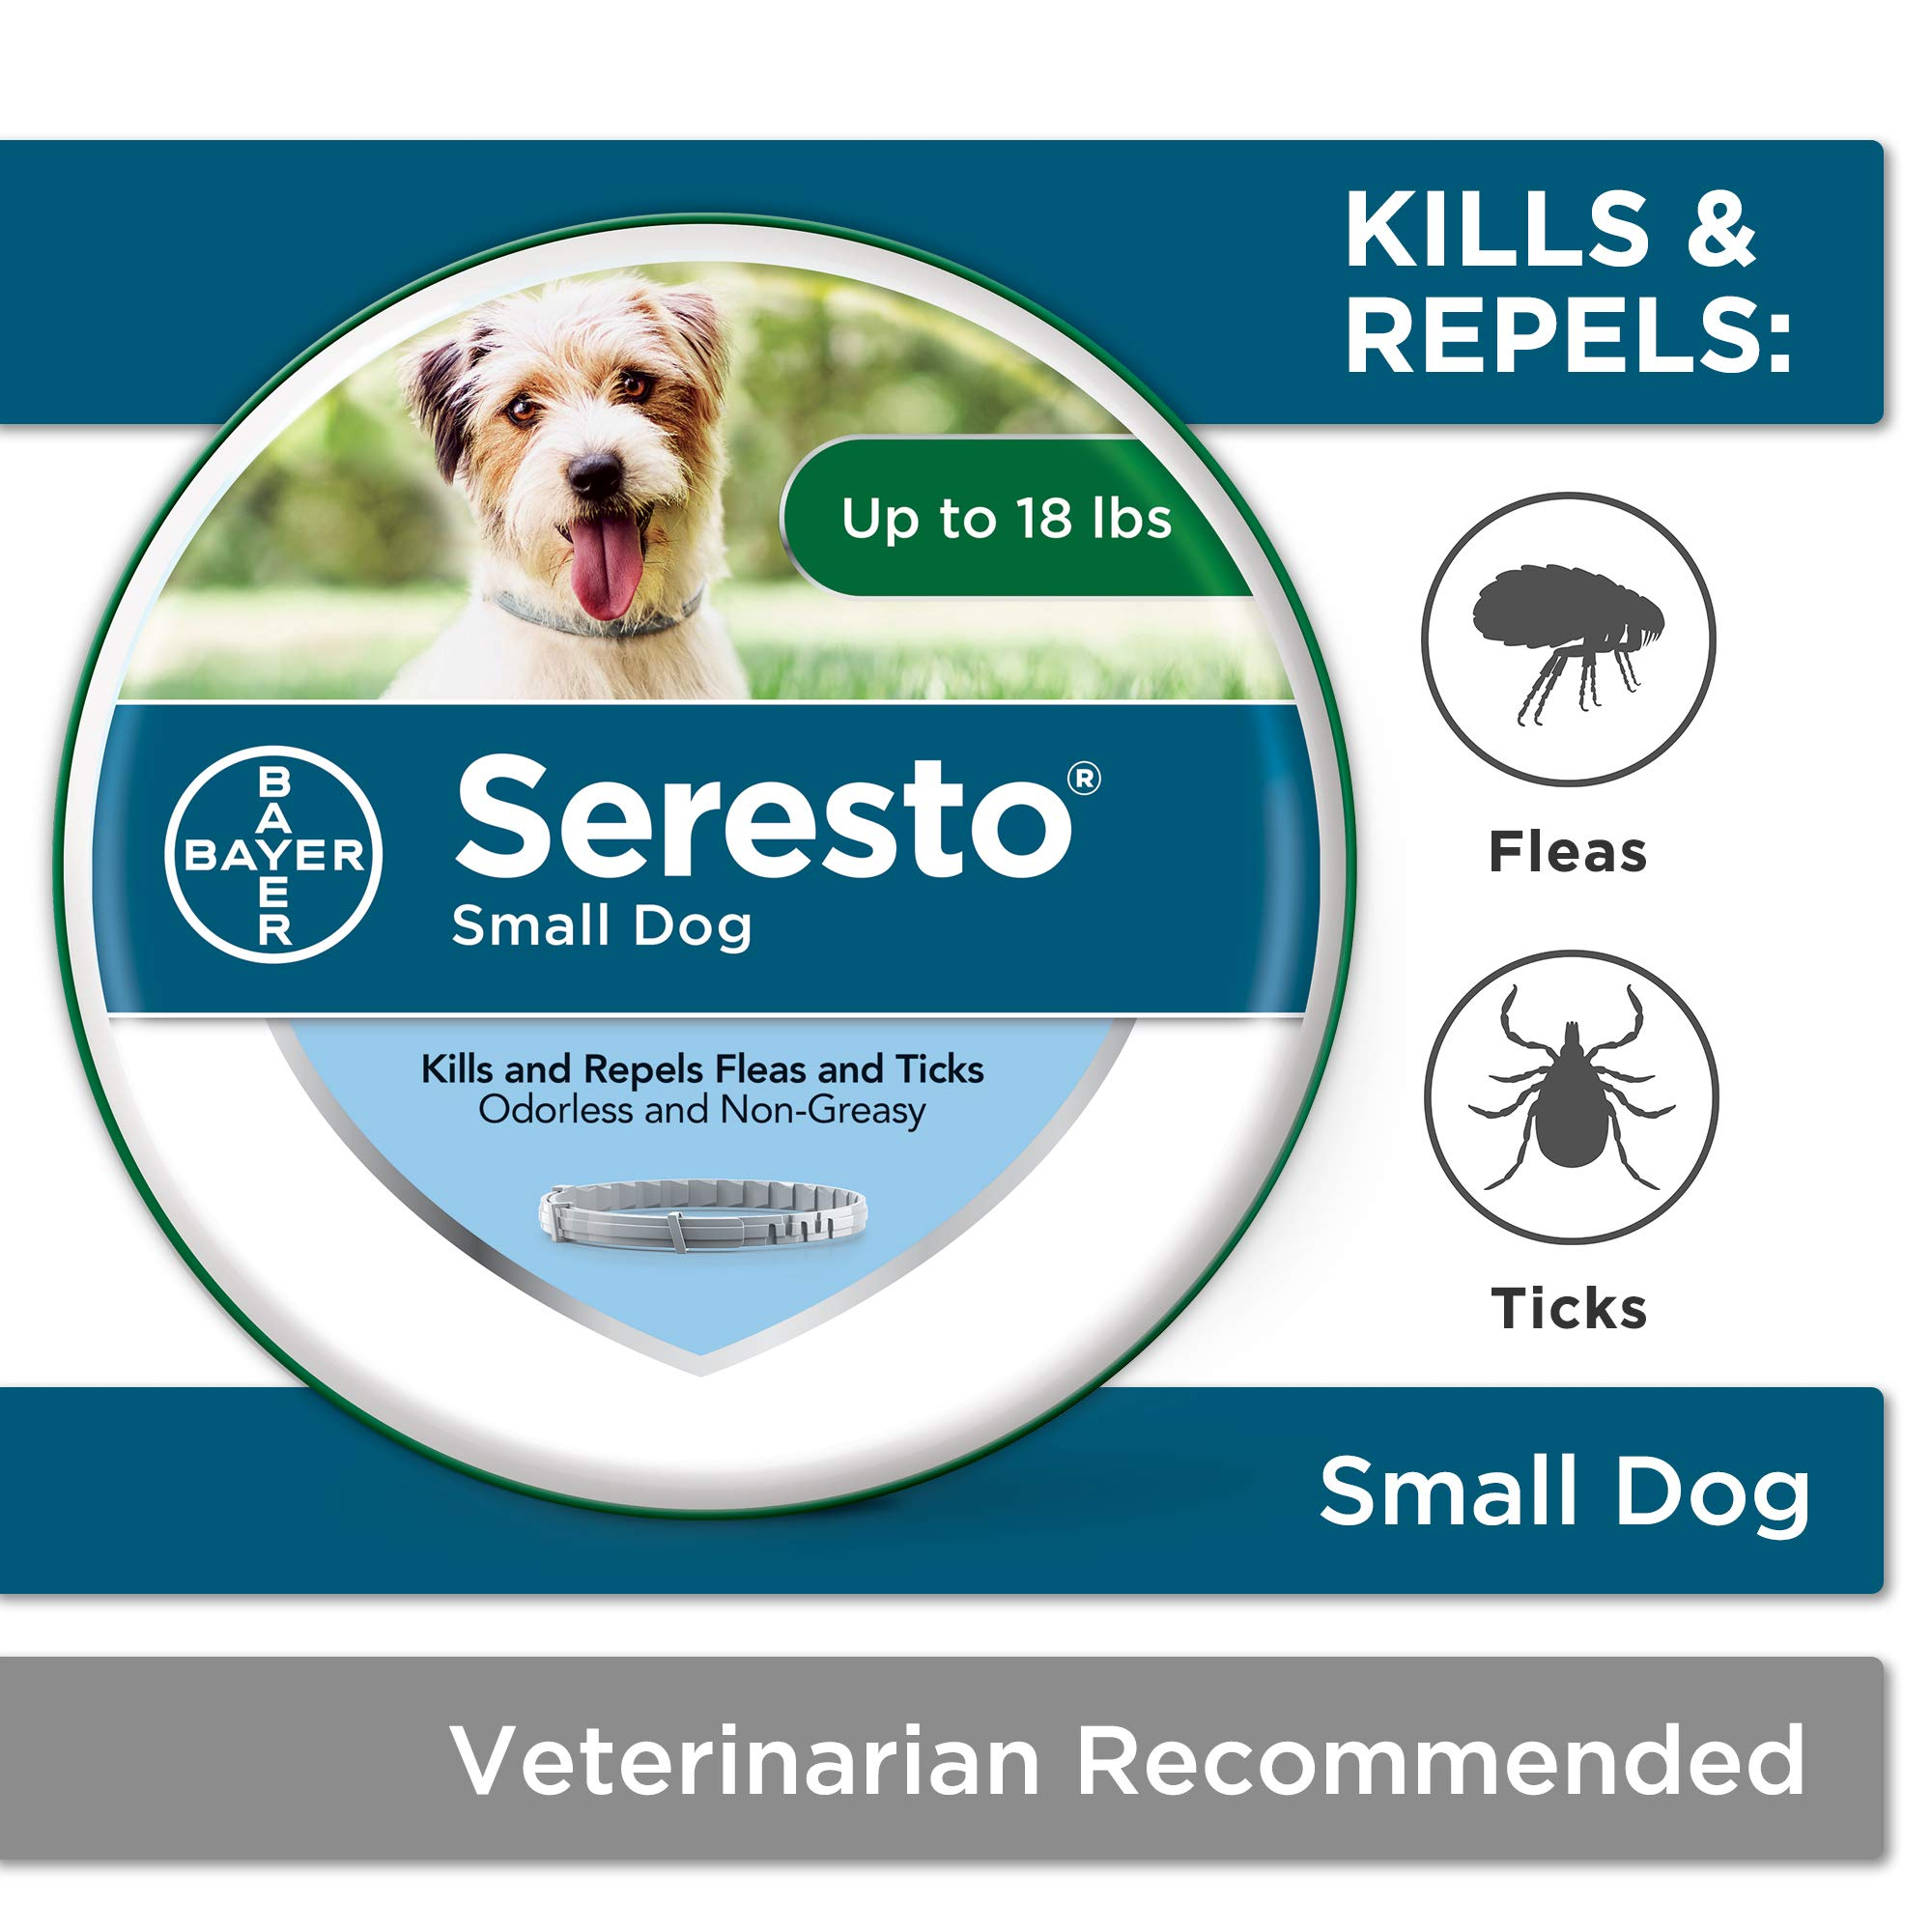 Seresto flea collar for dogs, 8-month flea and tick prevention for dogs up to 18 lbs by Bayer Animal Health